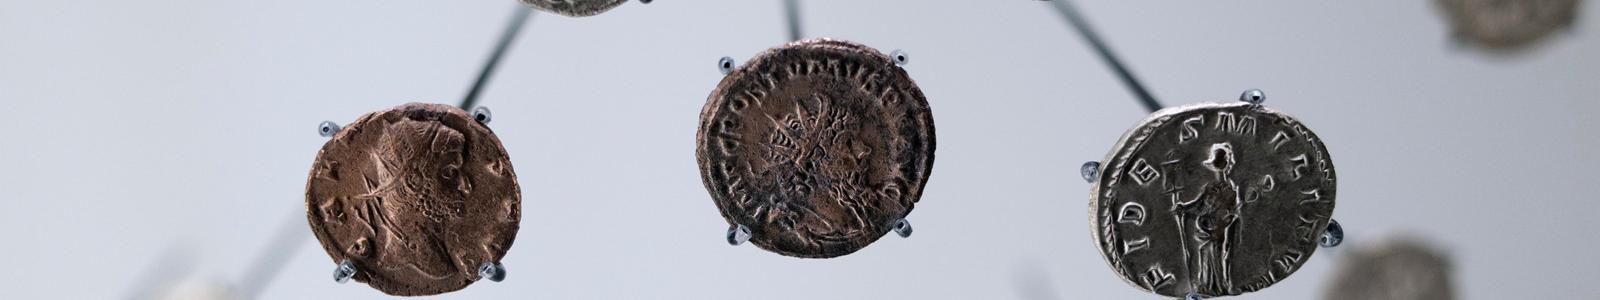 Coin, penny, part of a hoard found at White Lane, Greywell, Mapledurwell and Up Nately, Hampshire in 1989, issued by Henry III, minted by the moneyer Nicole at London, 1248-1250